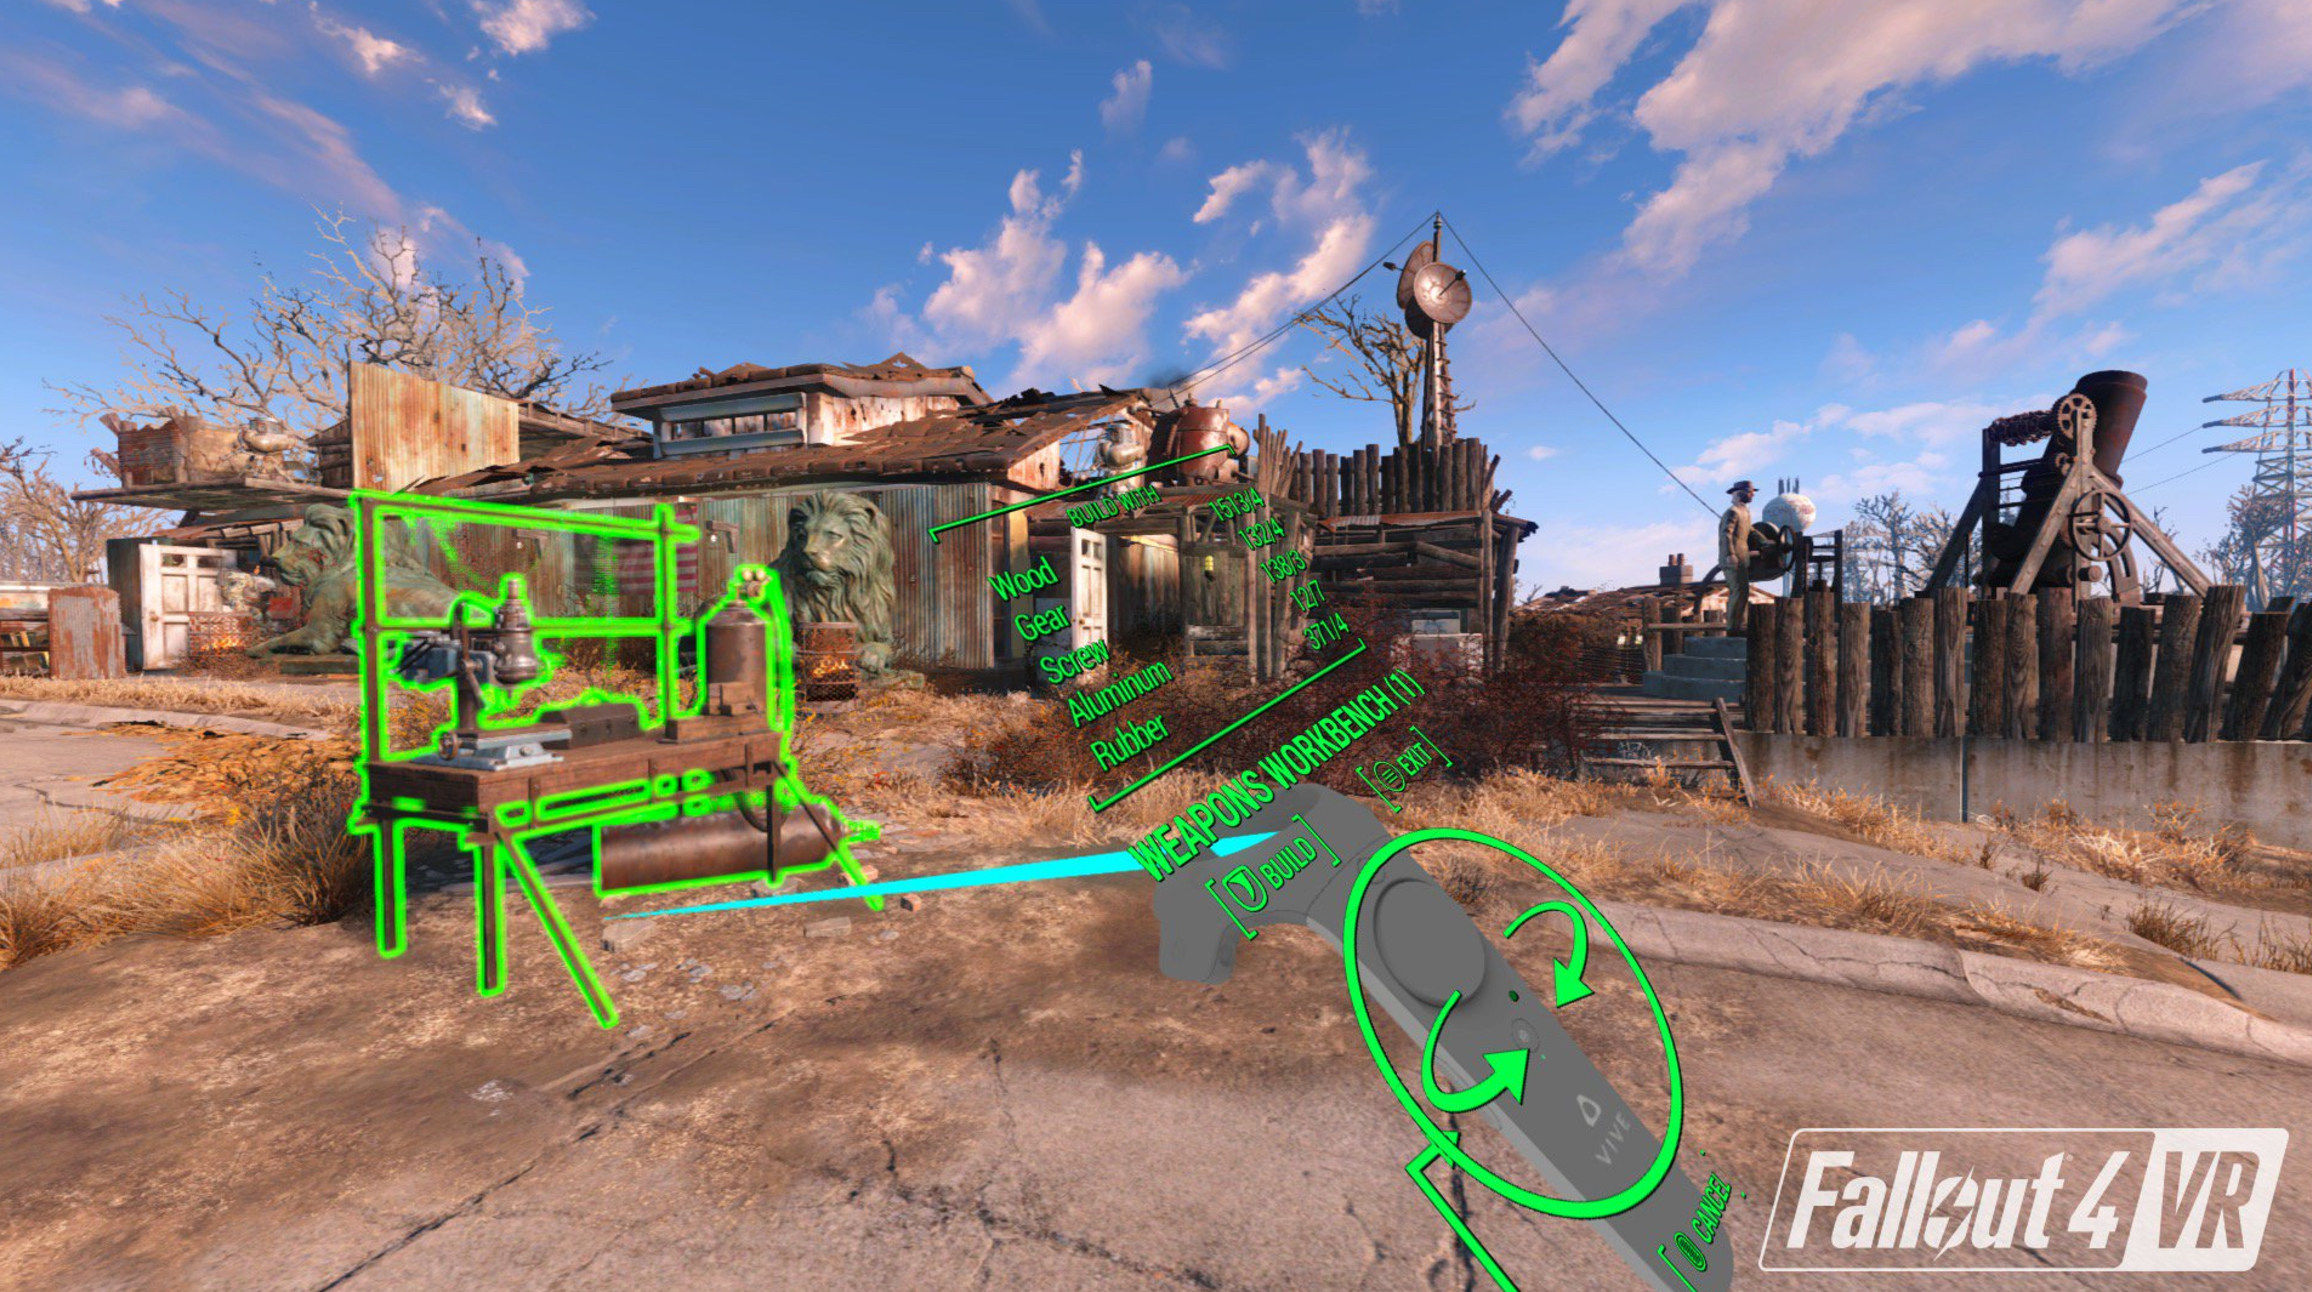 Fallout-4-VR-3